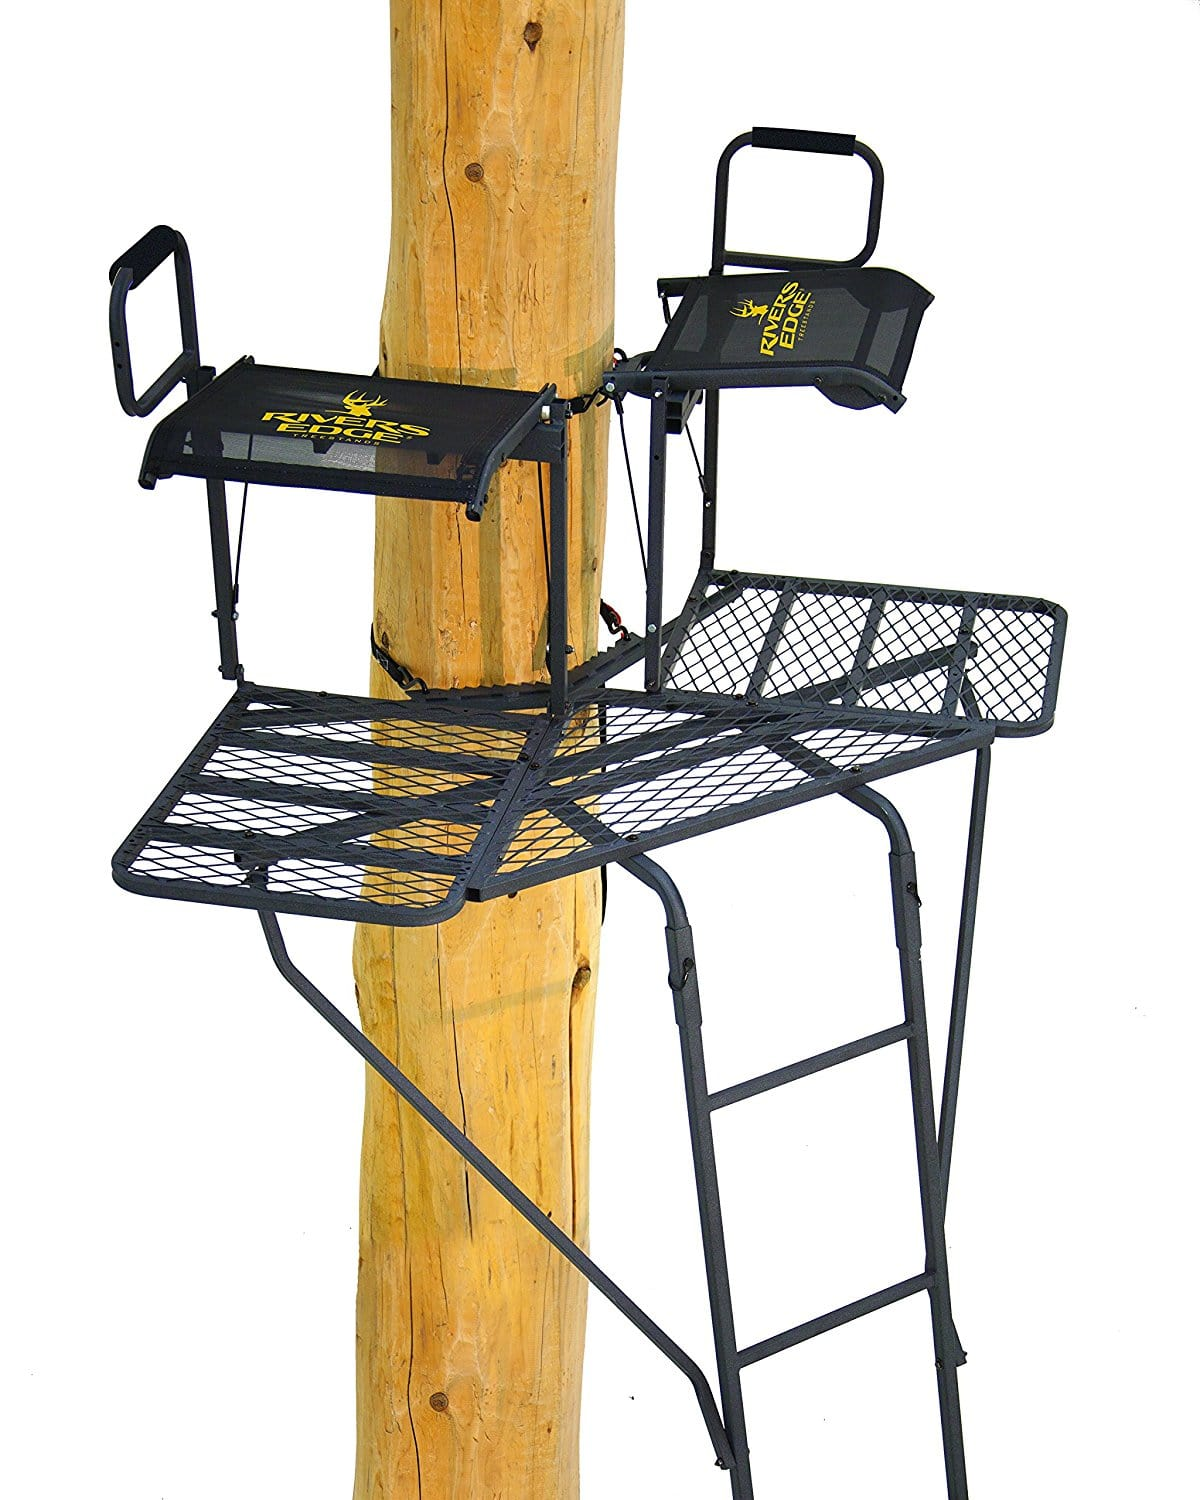 Best Ladder Stand For Bowhunters